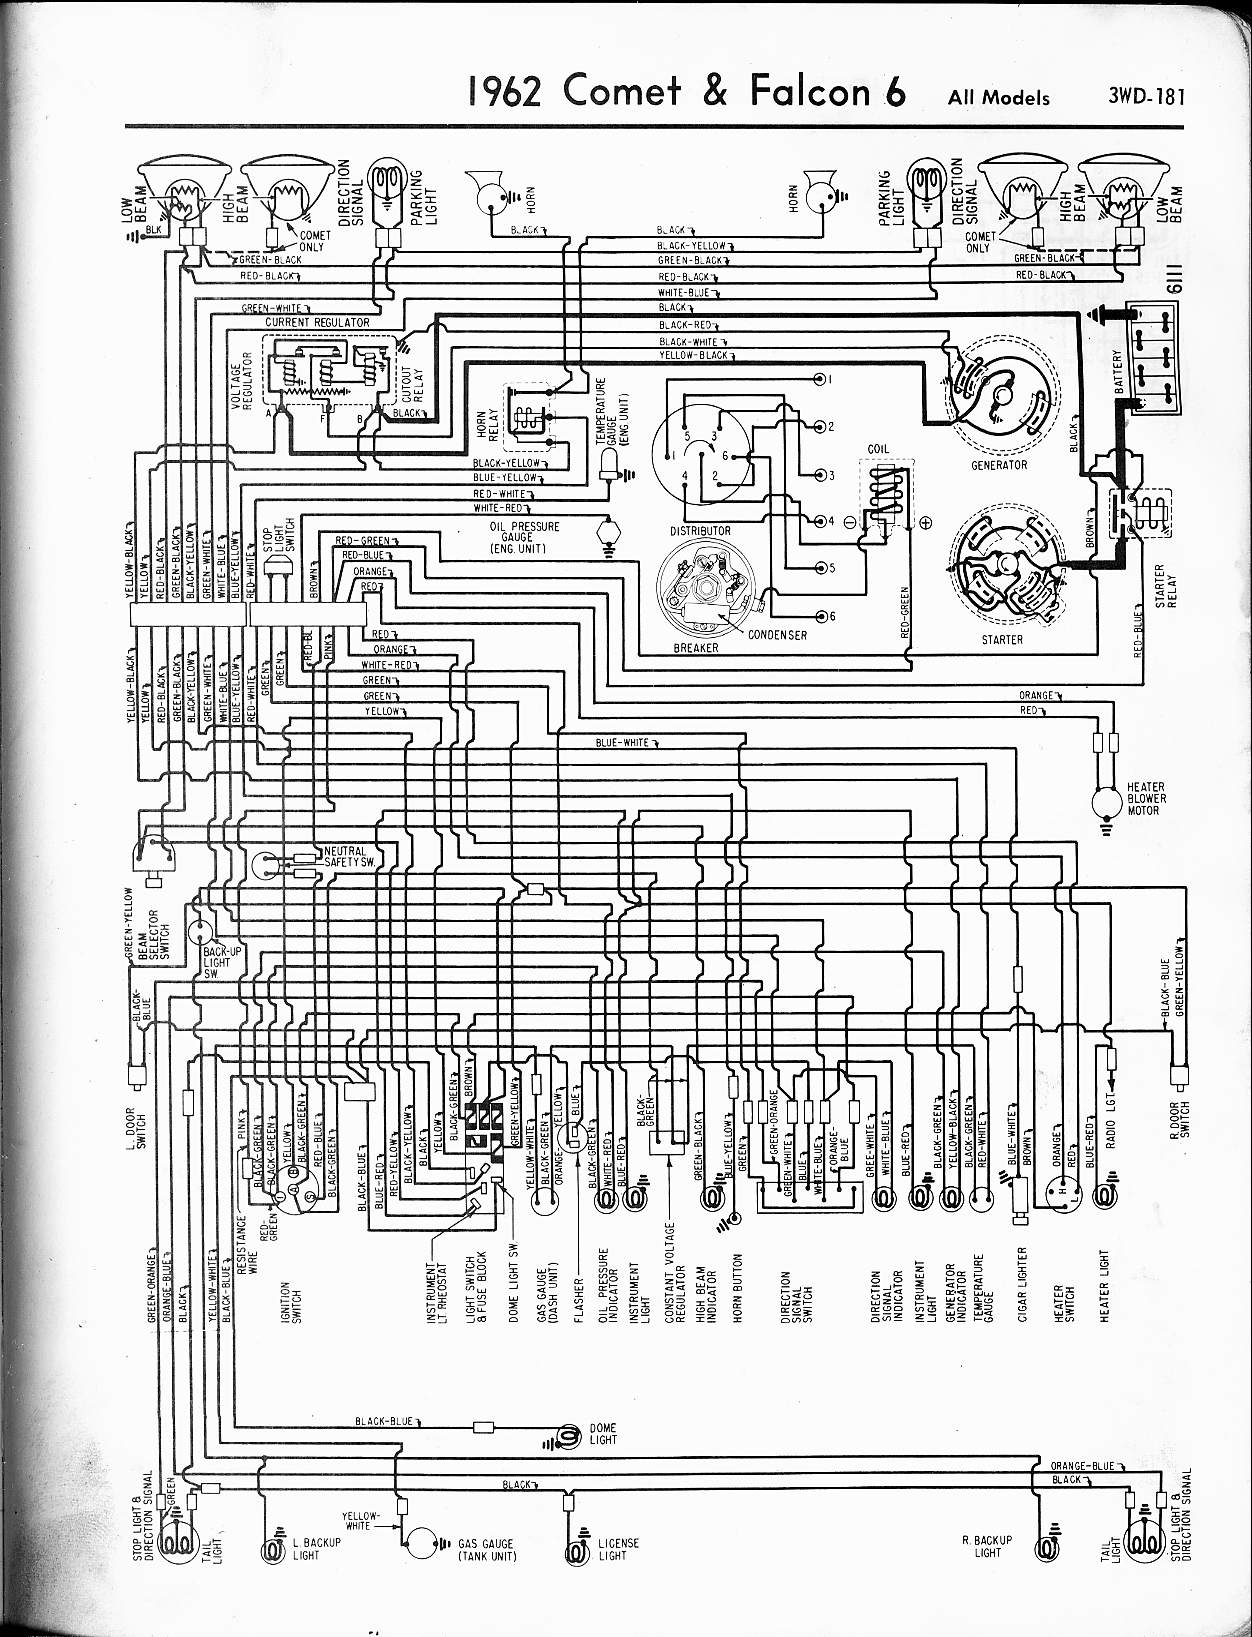 5765 Ford Wiring Diagrams. 1962 6 Cyl Falcon. Ford. Radio Wiring Diagram 2010 Ford Police Interceptor At Scoala.co